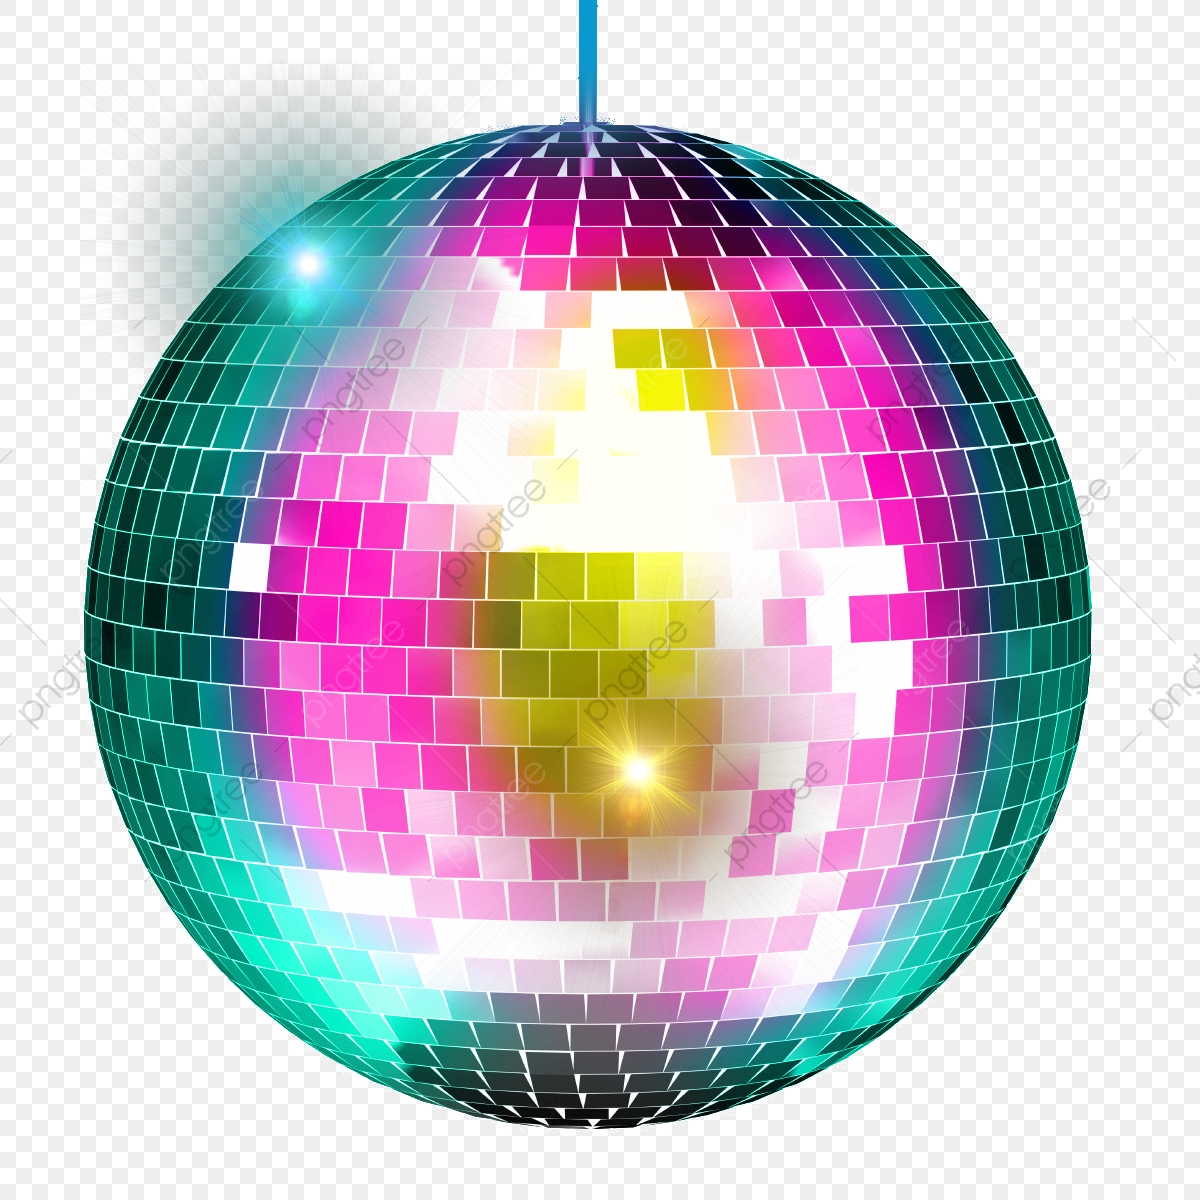 Disco Ball, Disco, Ball PNG Transparent Clipart Image and PSD File.